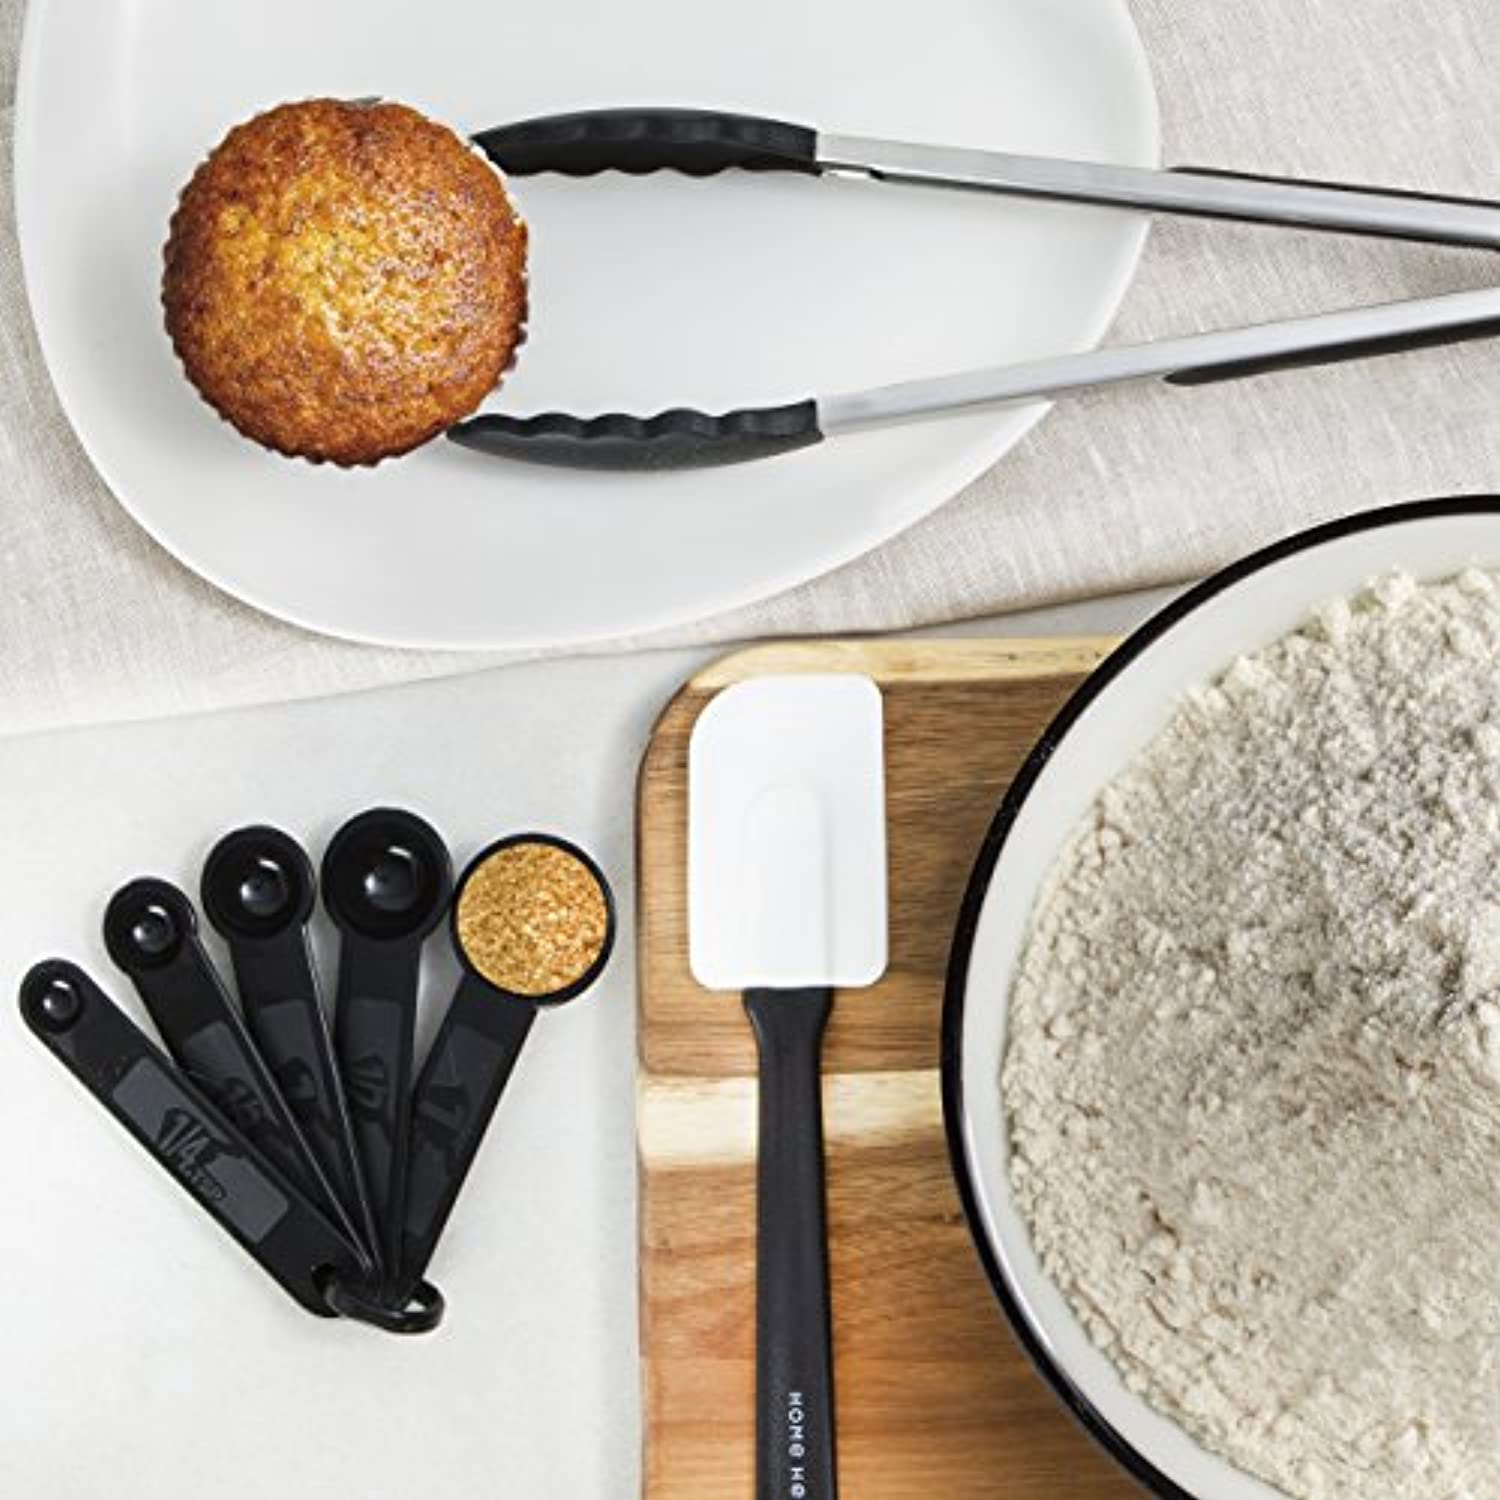 Classier: Buy Home Hero Home Hero Kitchen Utensil Set - 23 Nylon Cooking Utensils - Kitchen Utensils with Spatula - Kitchen Gadgets Cookware Set - Best Kitchen Tool Set